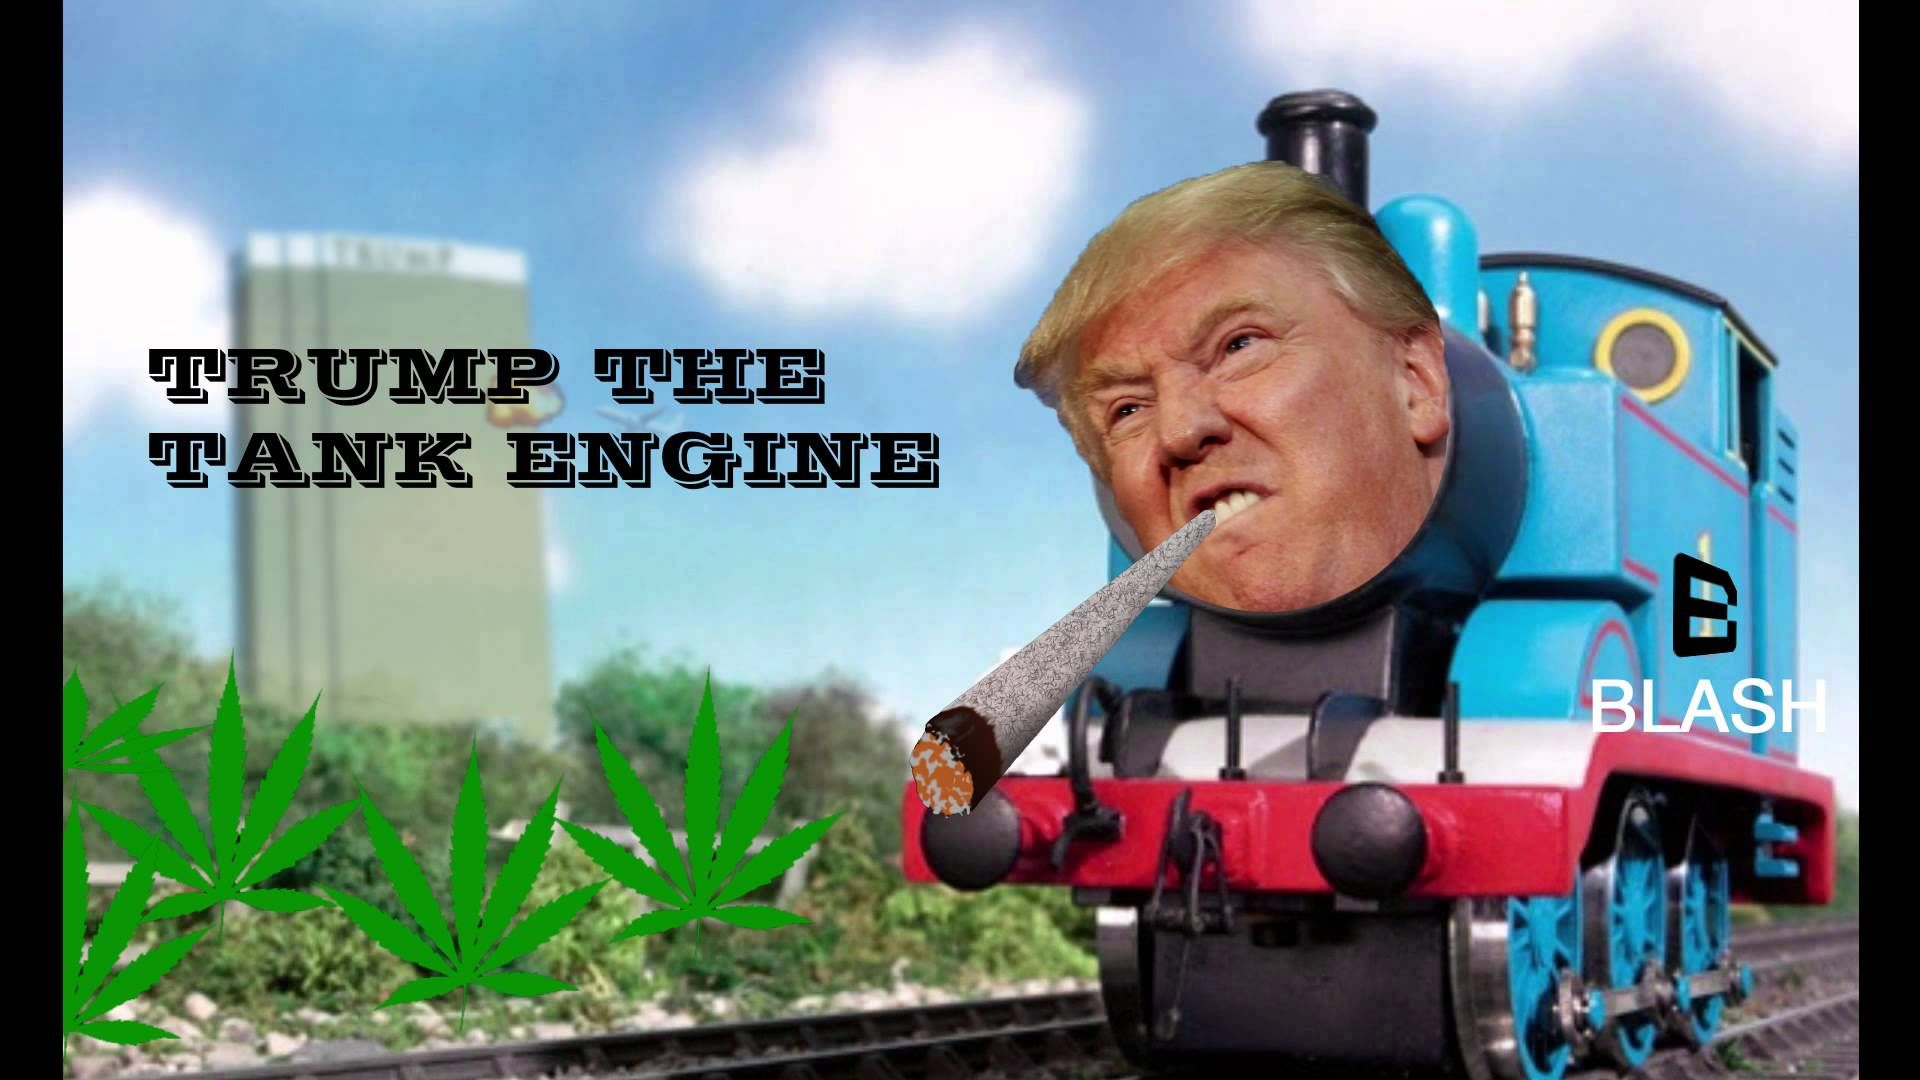 Thomas The Tank Engine Ft Donald Trump (Remix)